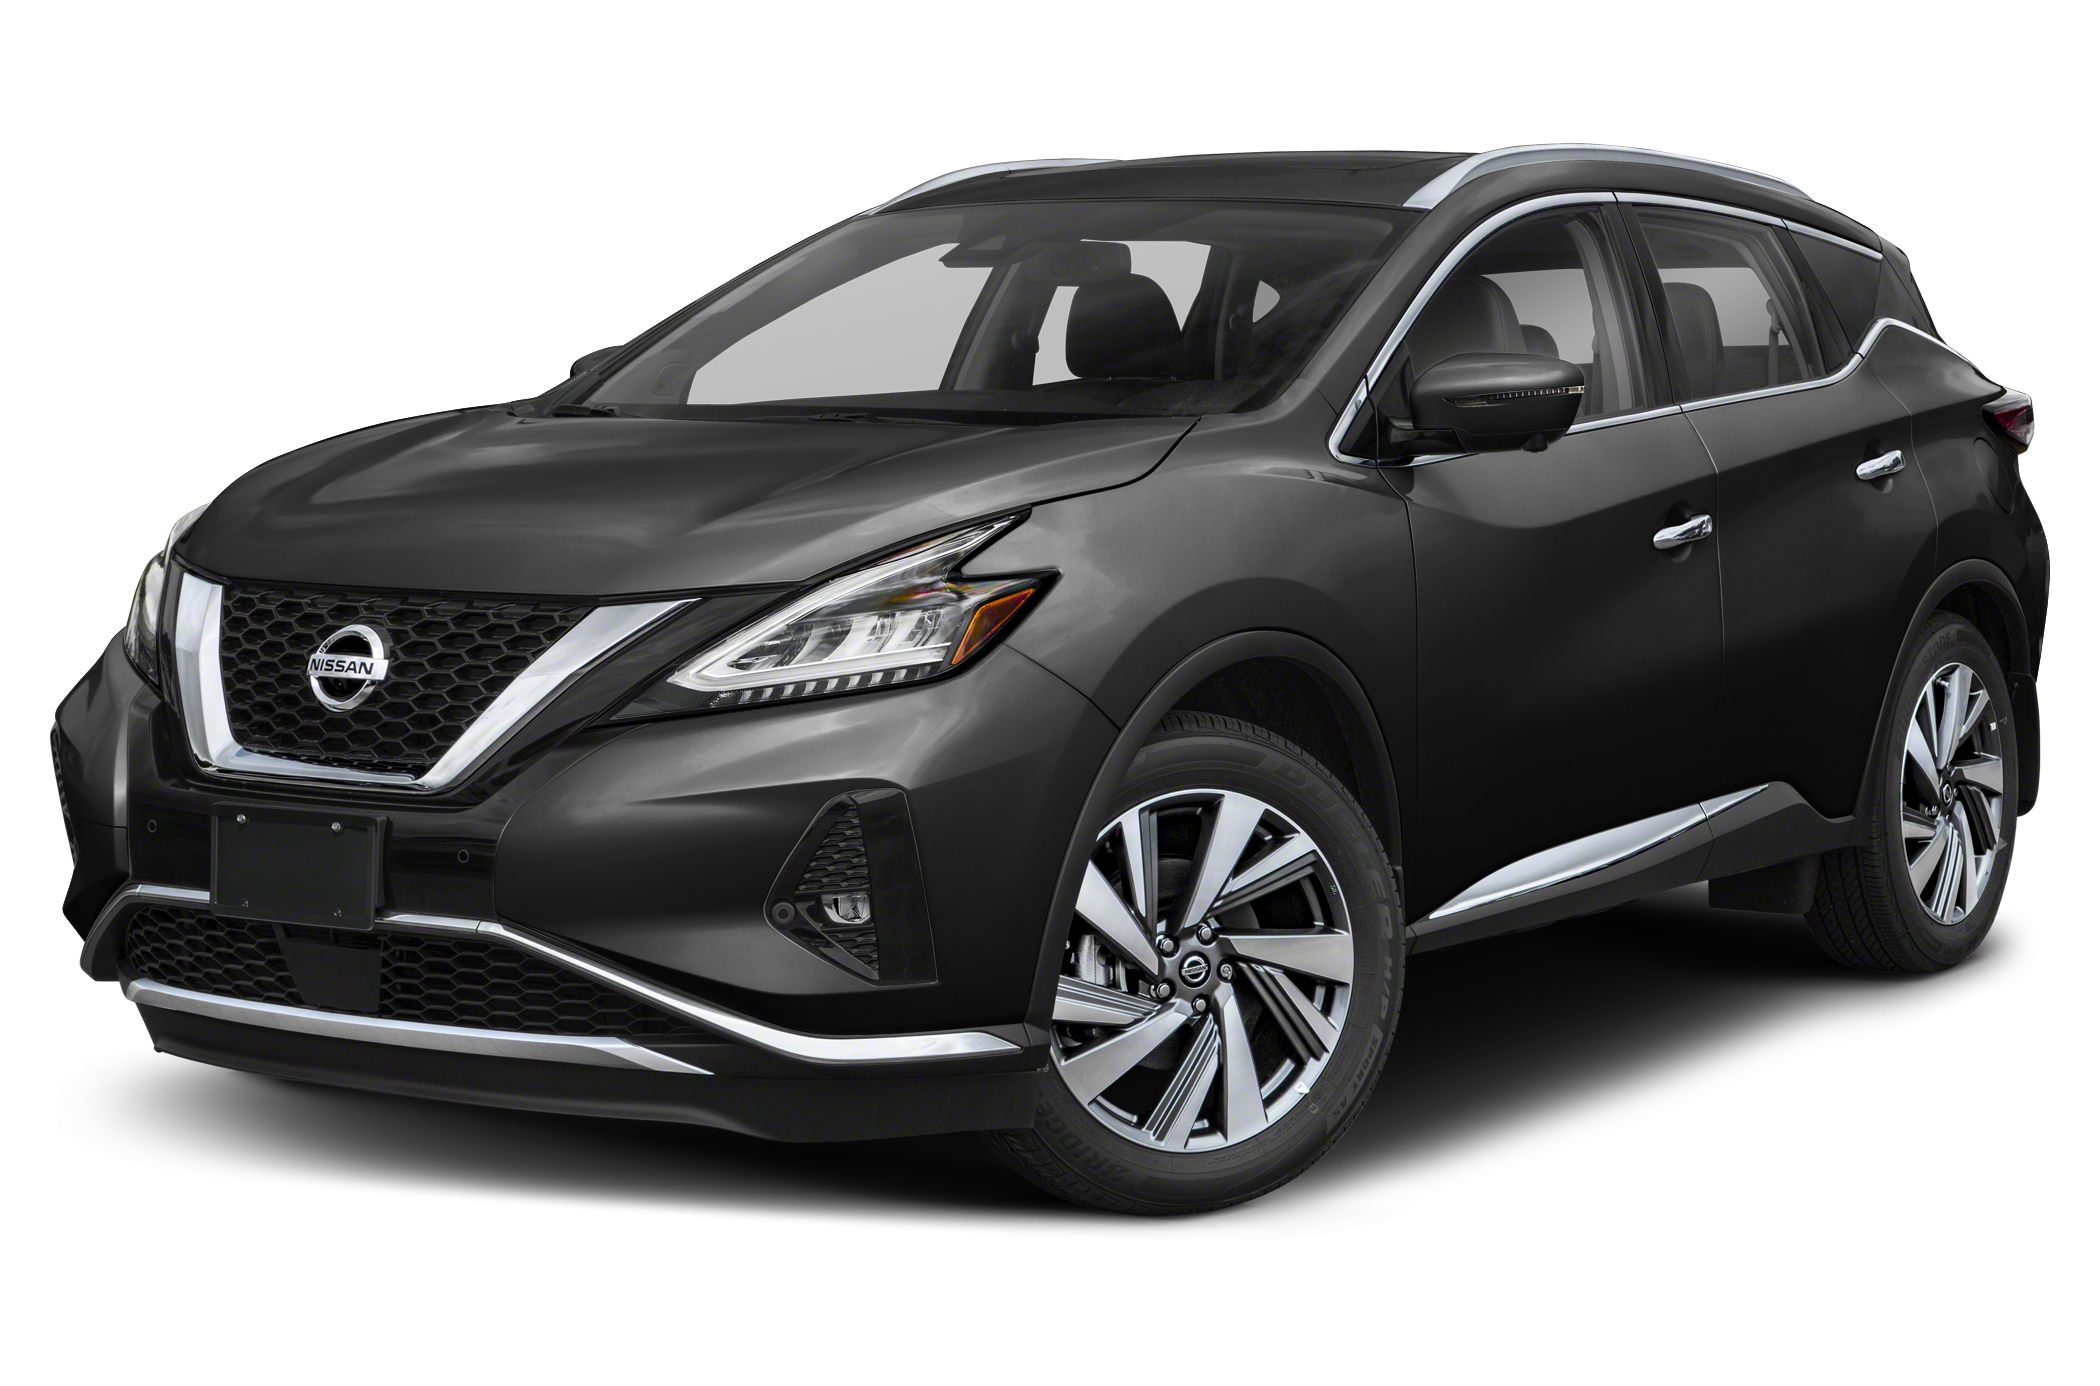 2020 nissan murano platinum 4dr all wheel drive specs and prices 2020 nissan murano platinum 4dr all wheel drive specs and prices